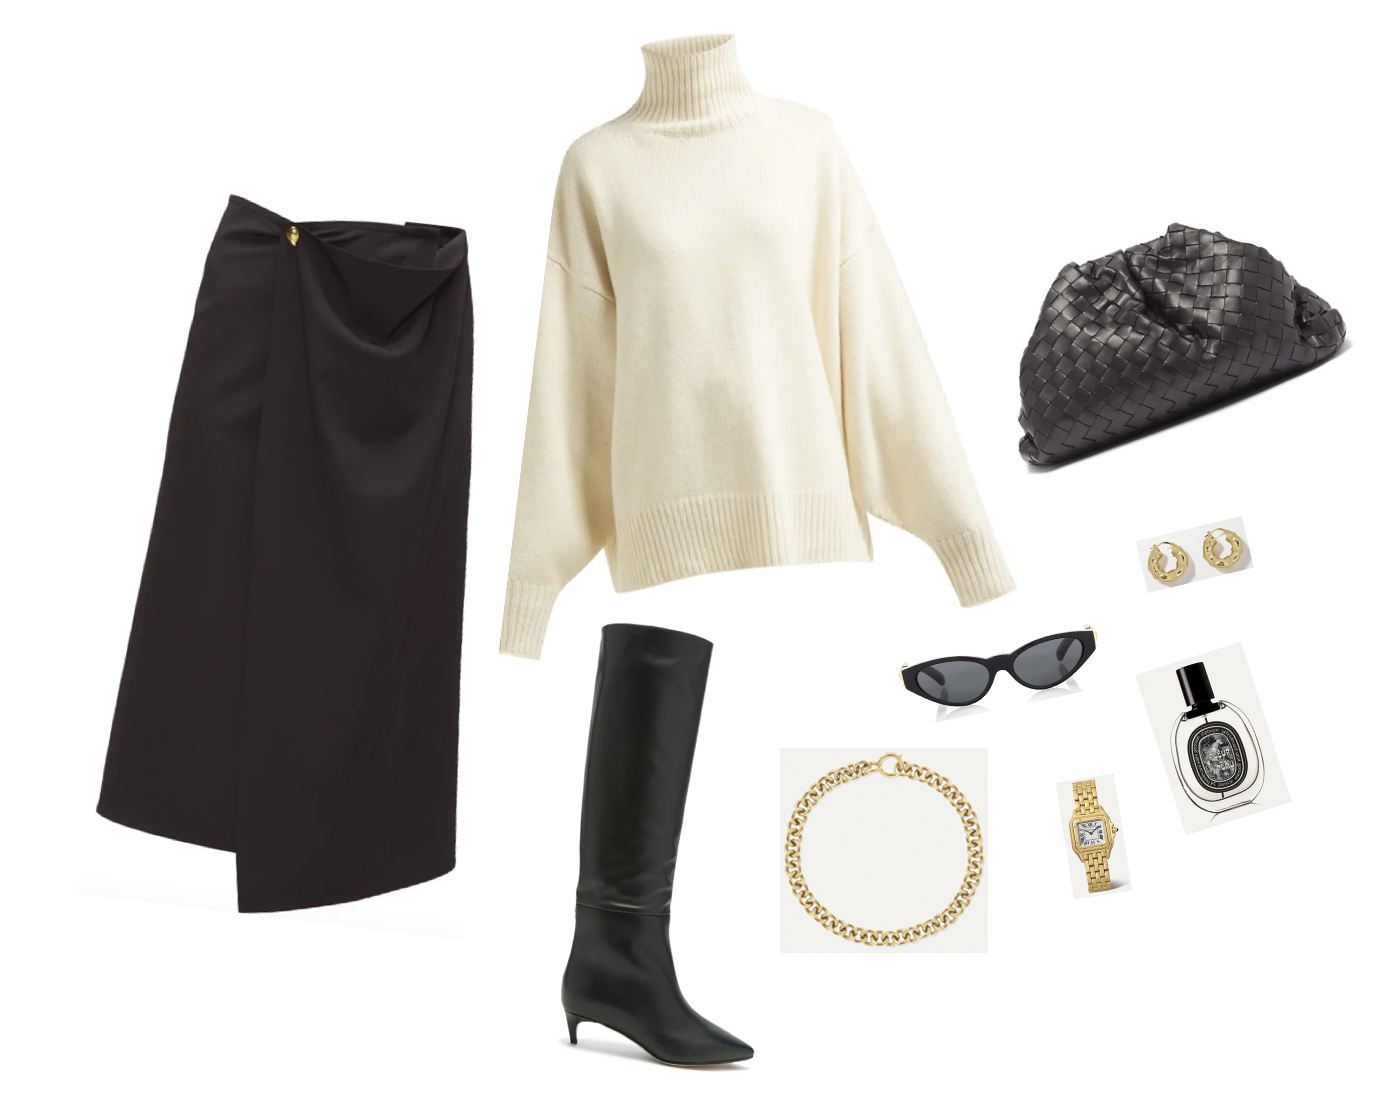 Trini | Bottega Veneta skirt Jimmy Choo boots